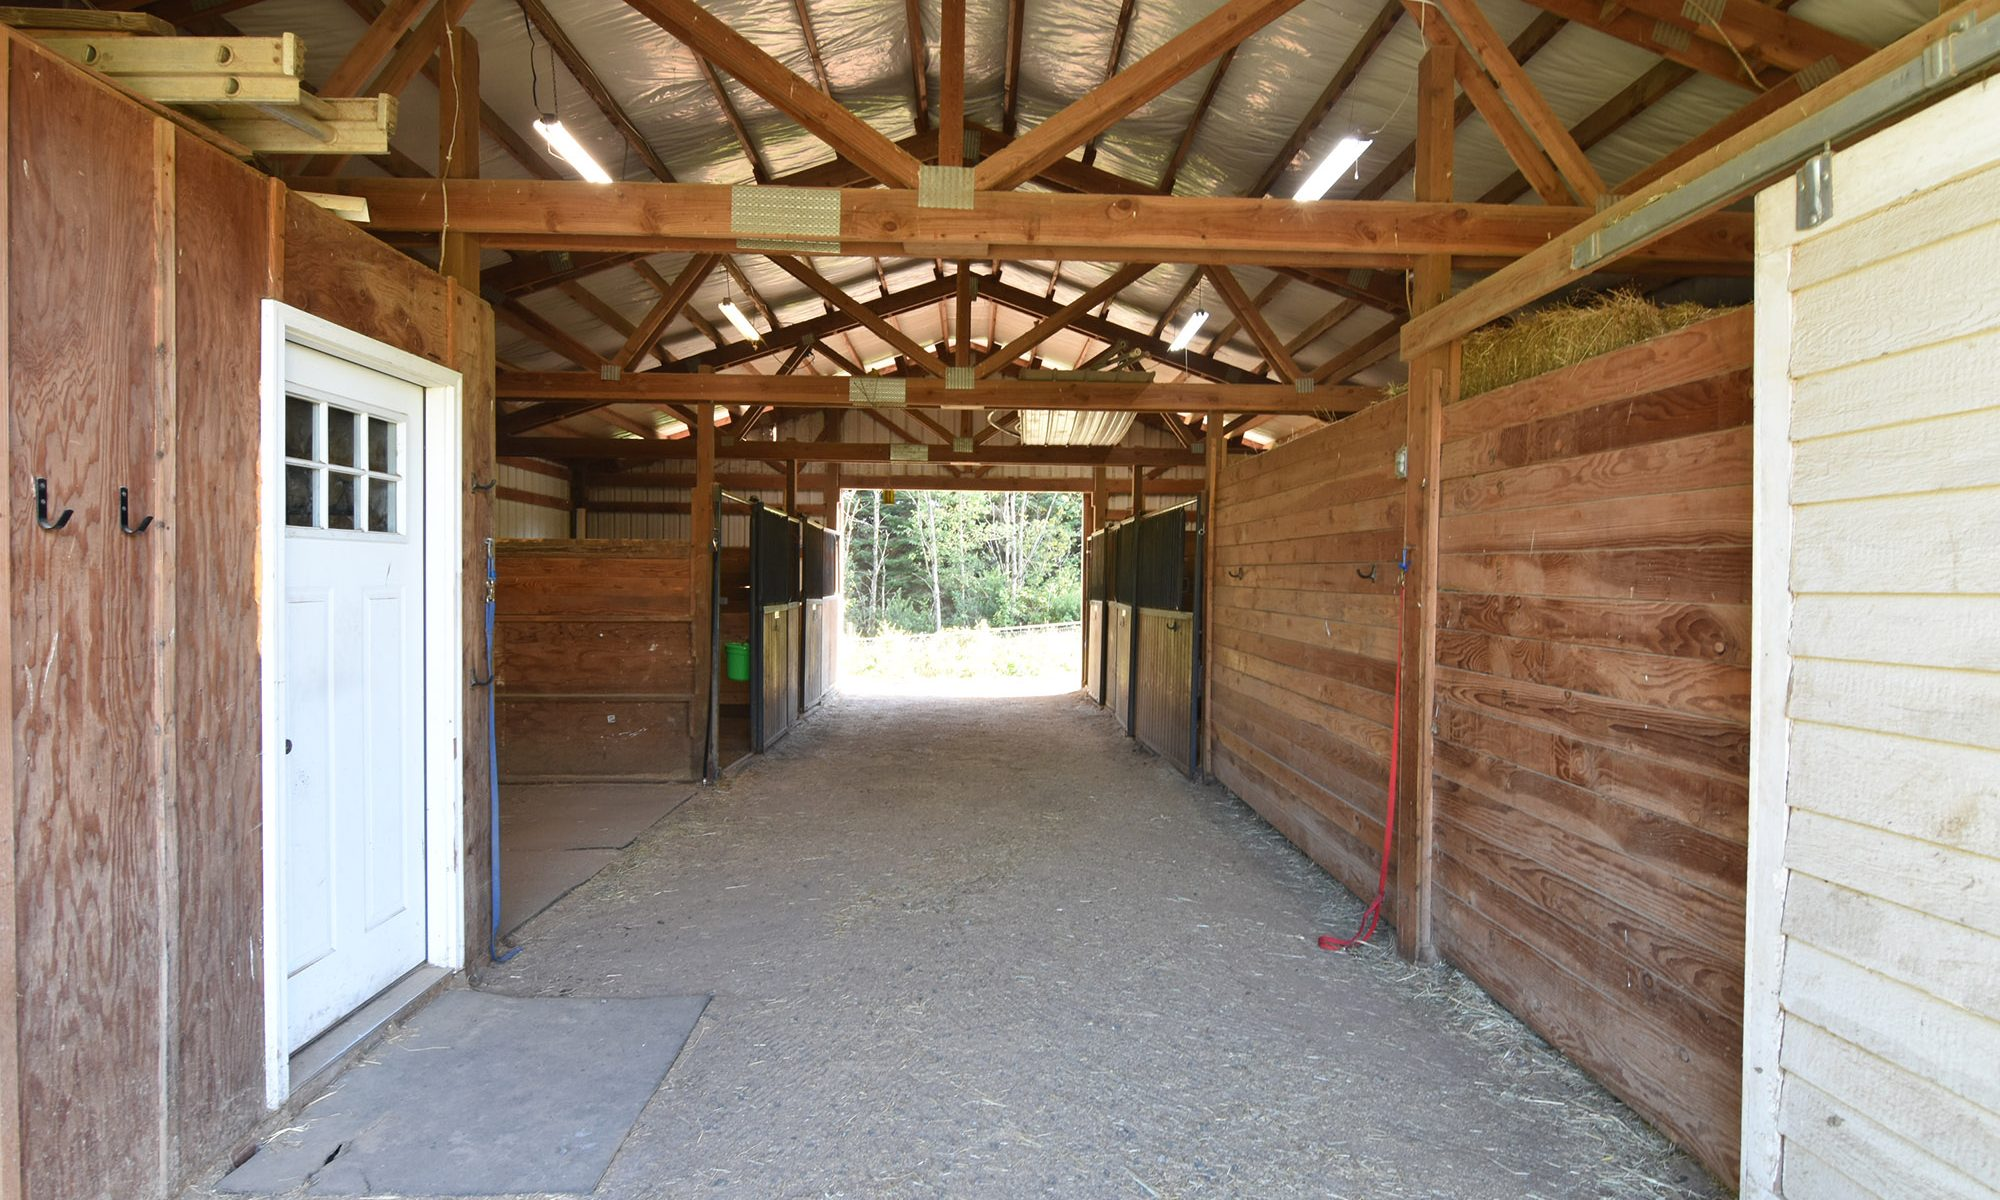 Inside of a 4 stall barn with tack room and feed room